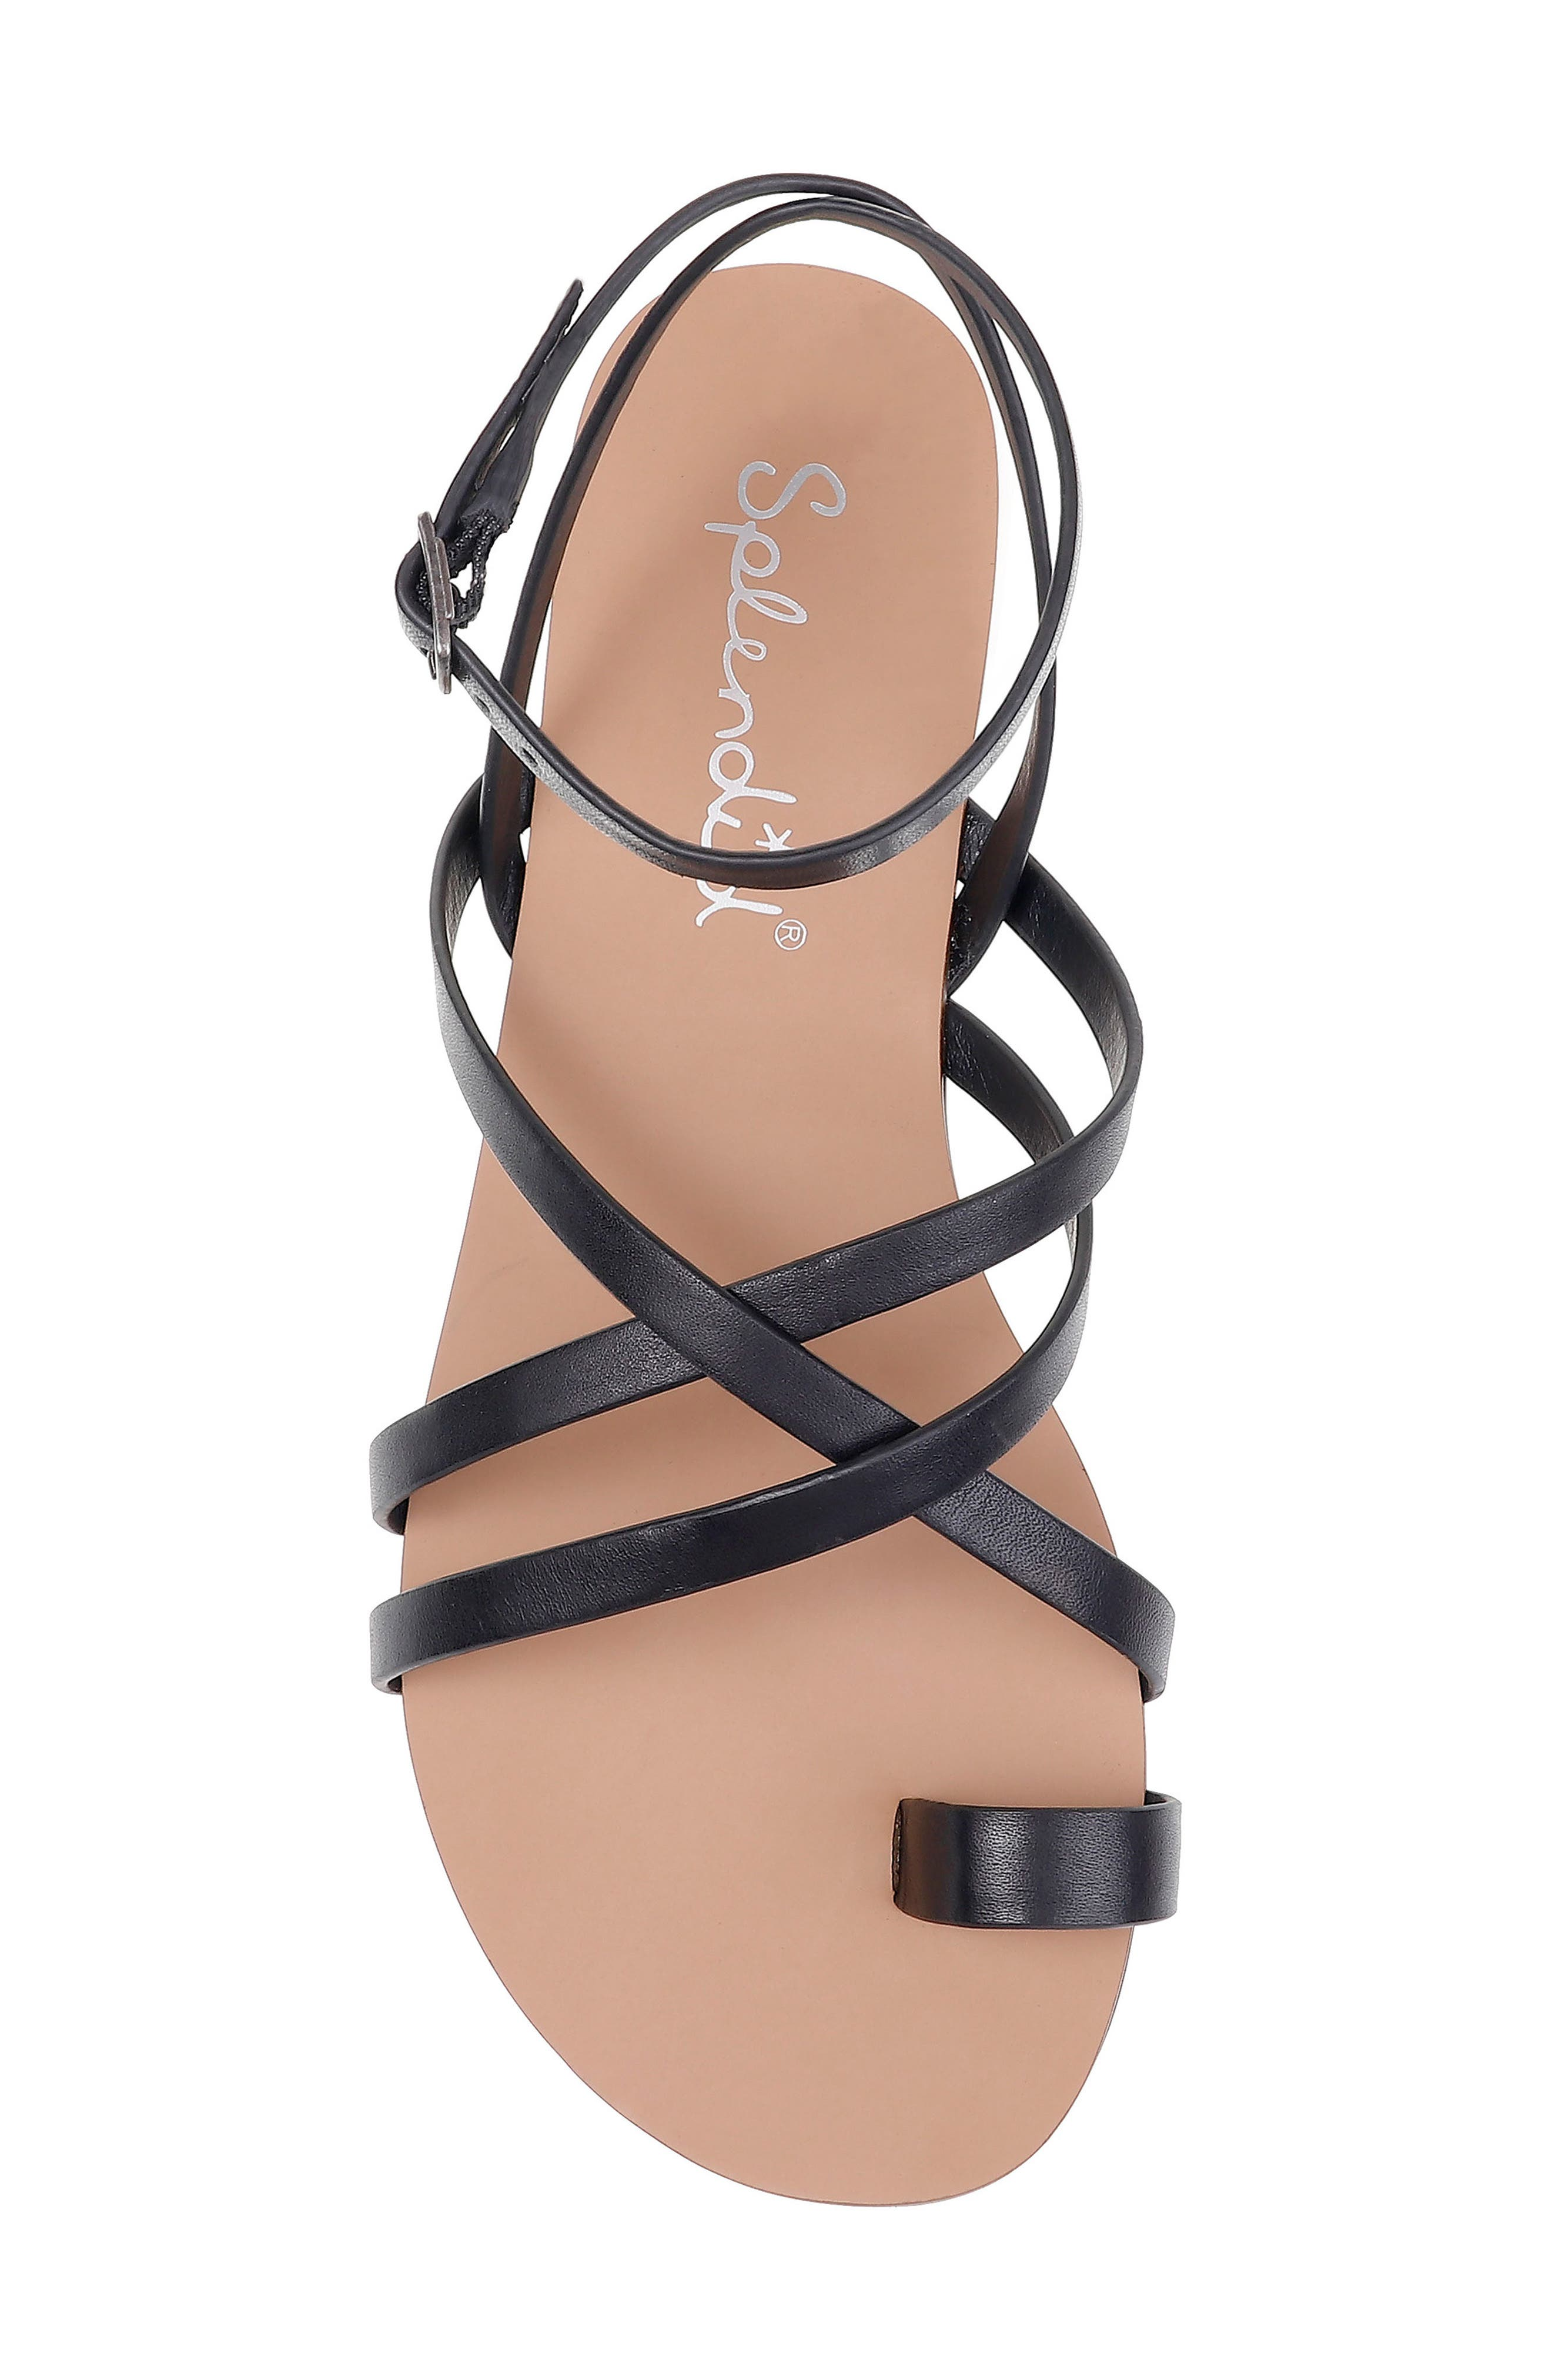 Sully Strappy Toe Loop Sandal,                             Alternate thumbnail 5, color,                             BLACK LEATHER